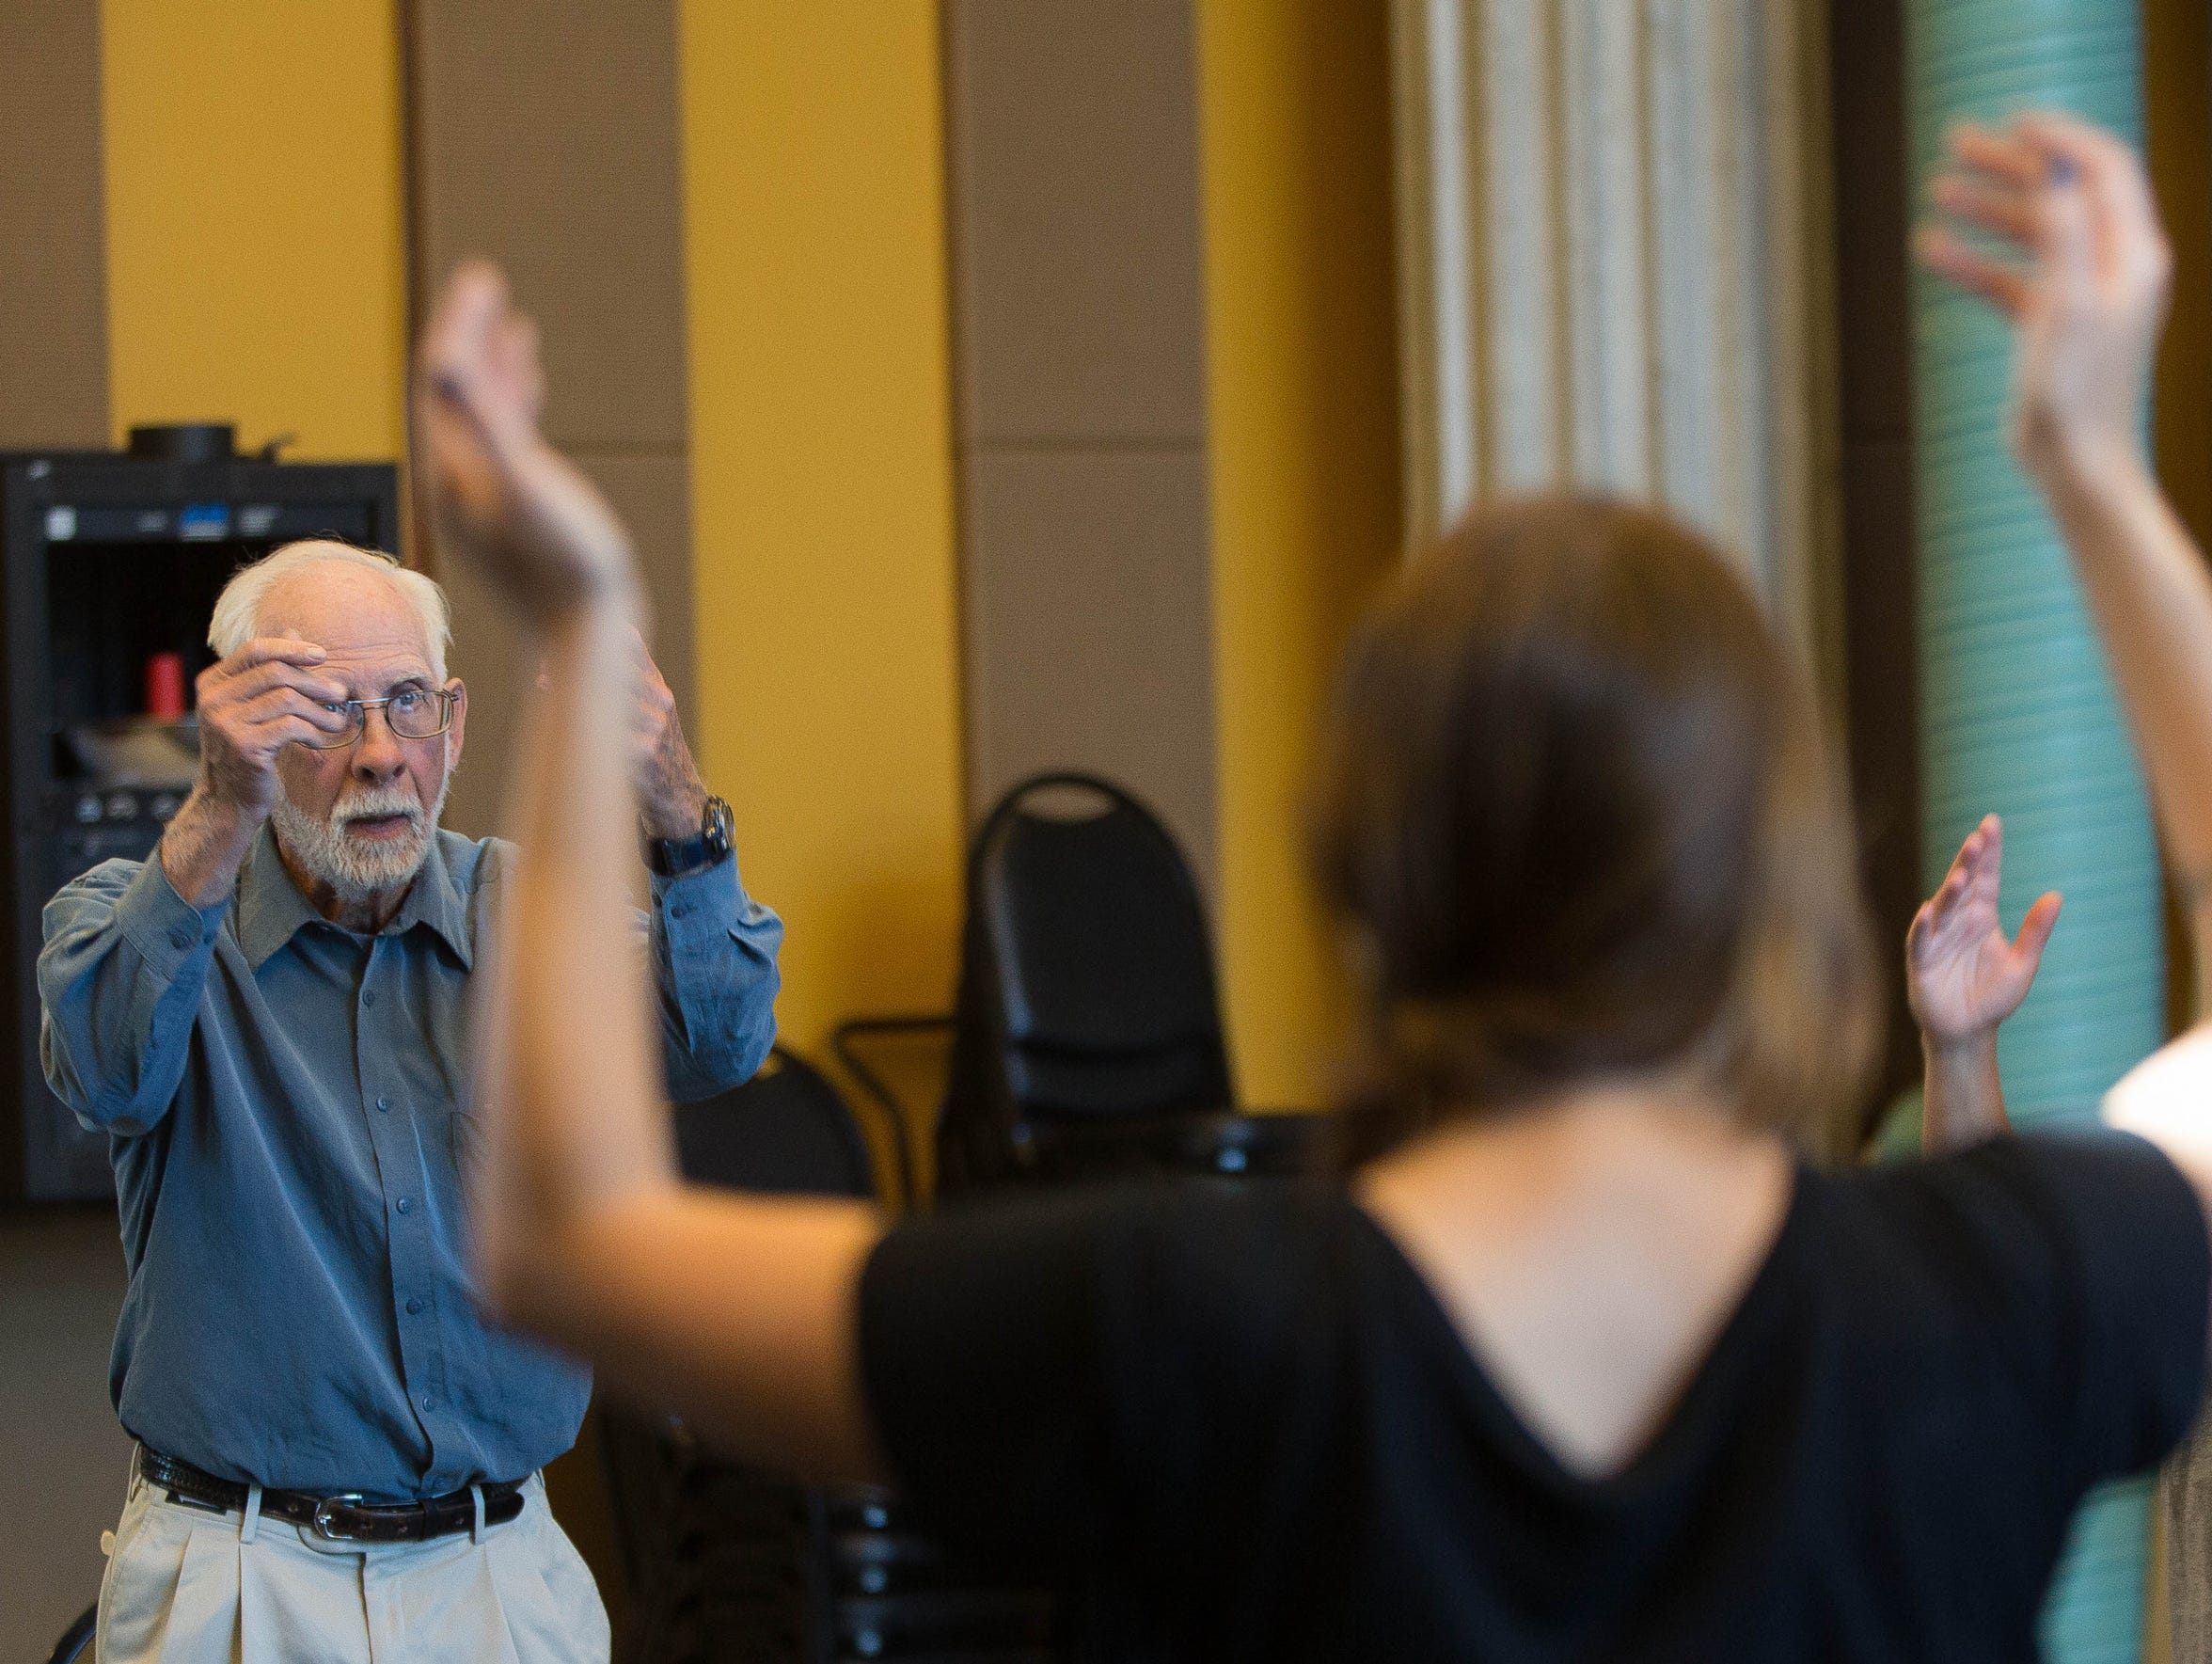 John Hamilton, who has Parkinson's disease, participates in an acting workshop on Friday, Nov. 10 at the New Mexico State University Performing Arts Center. Hamilton said he wants people to ask about the disease and to not be afraid to talk to people that are diagnosed with it, so more people can be educated.